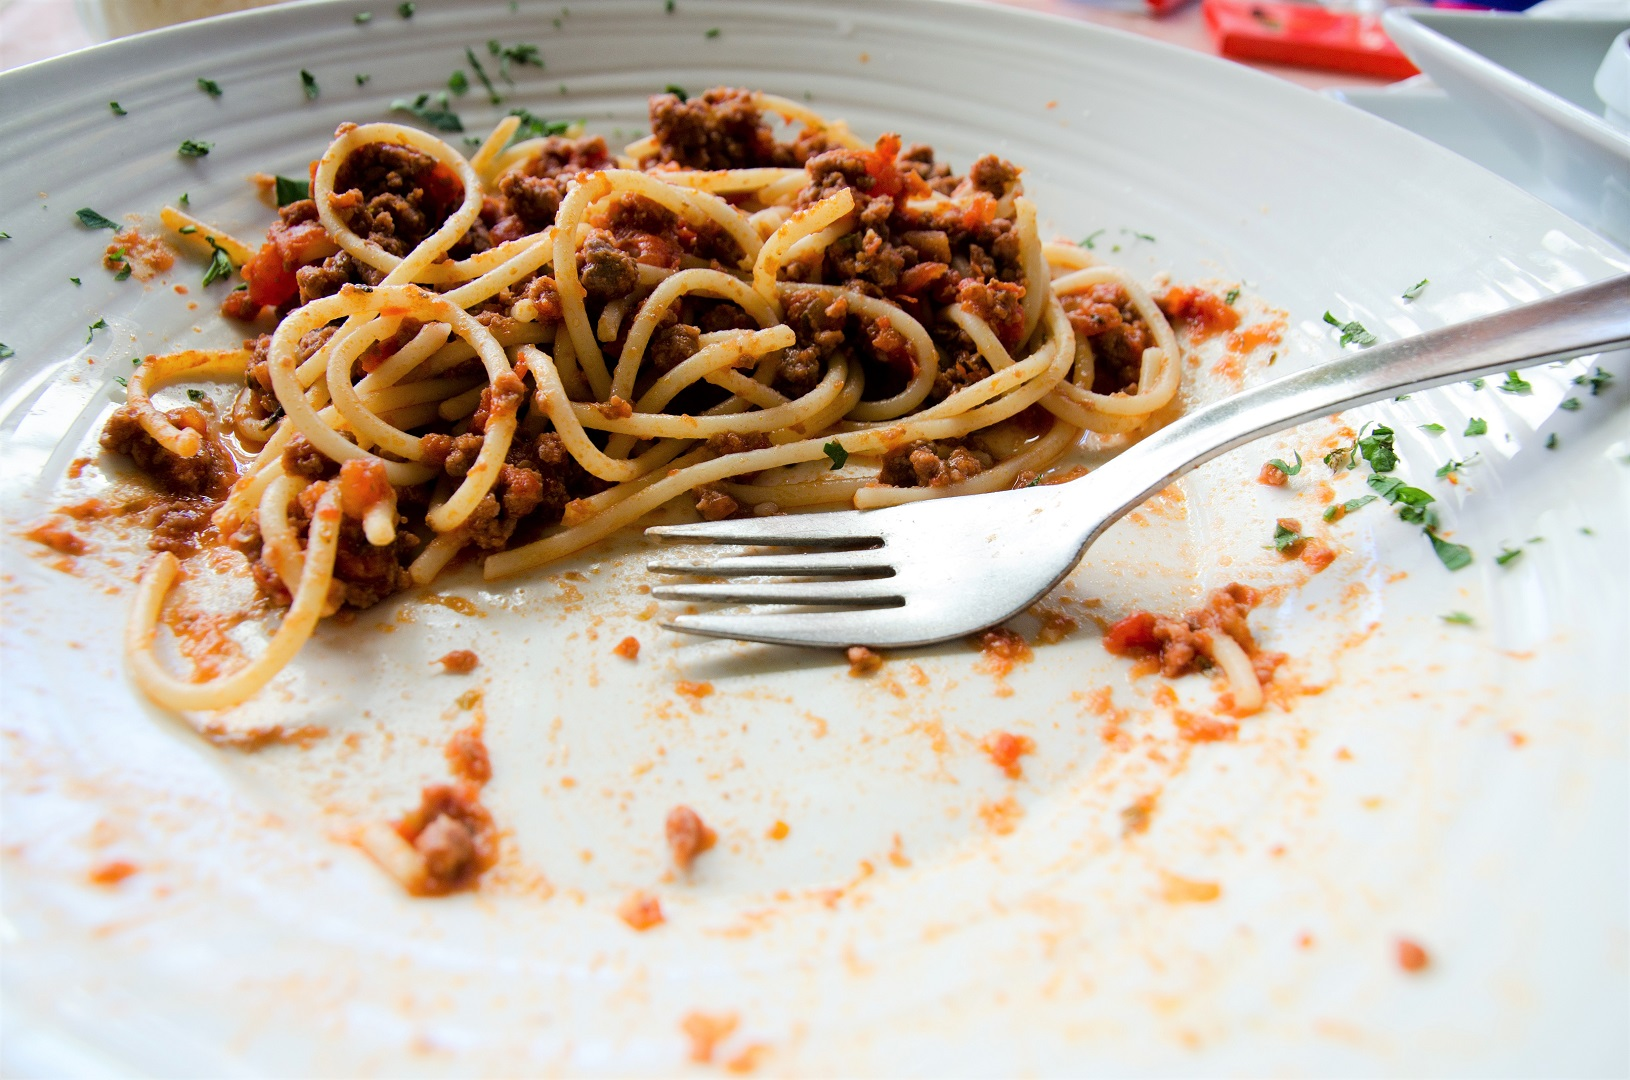 A Student Died in His Sleep After Eating Leftover Pasta—Here's How